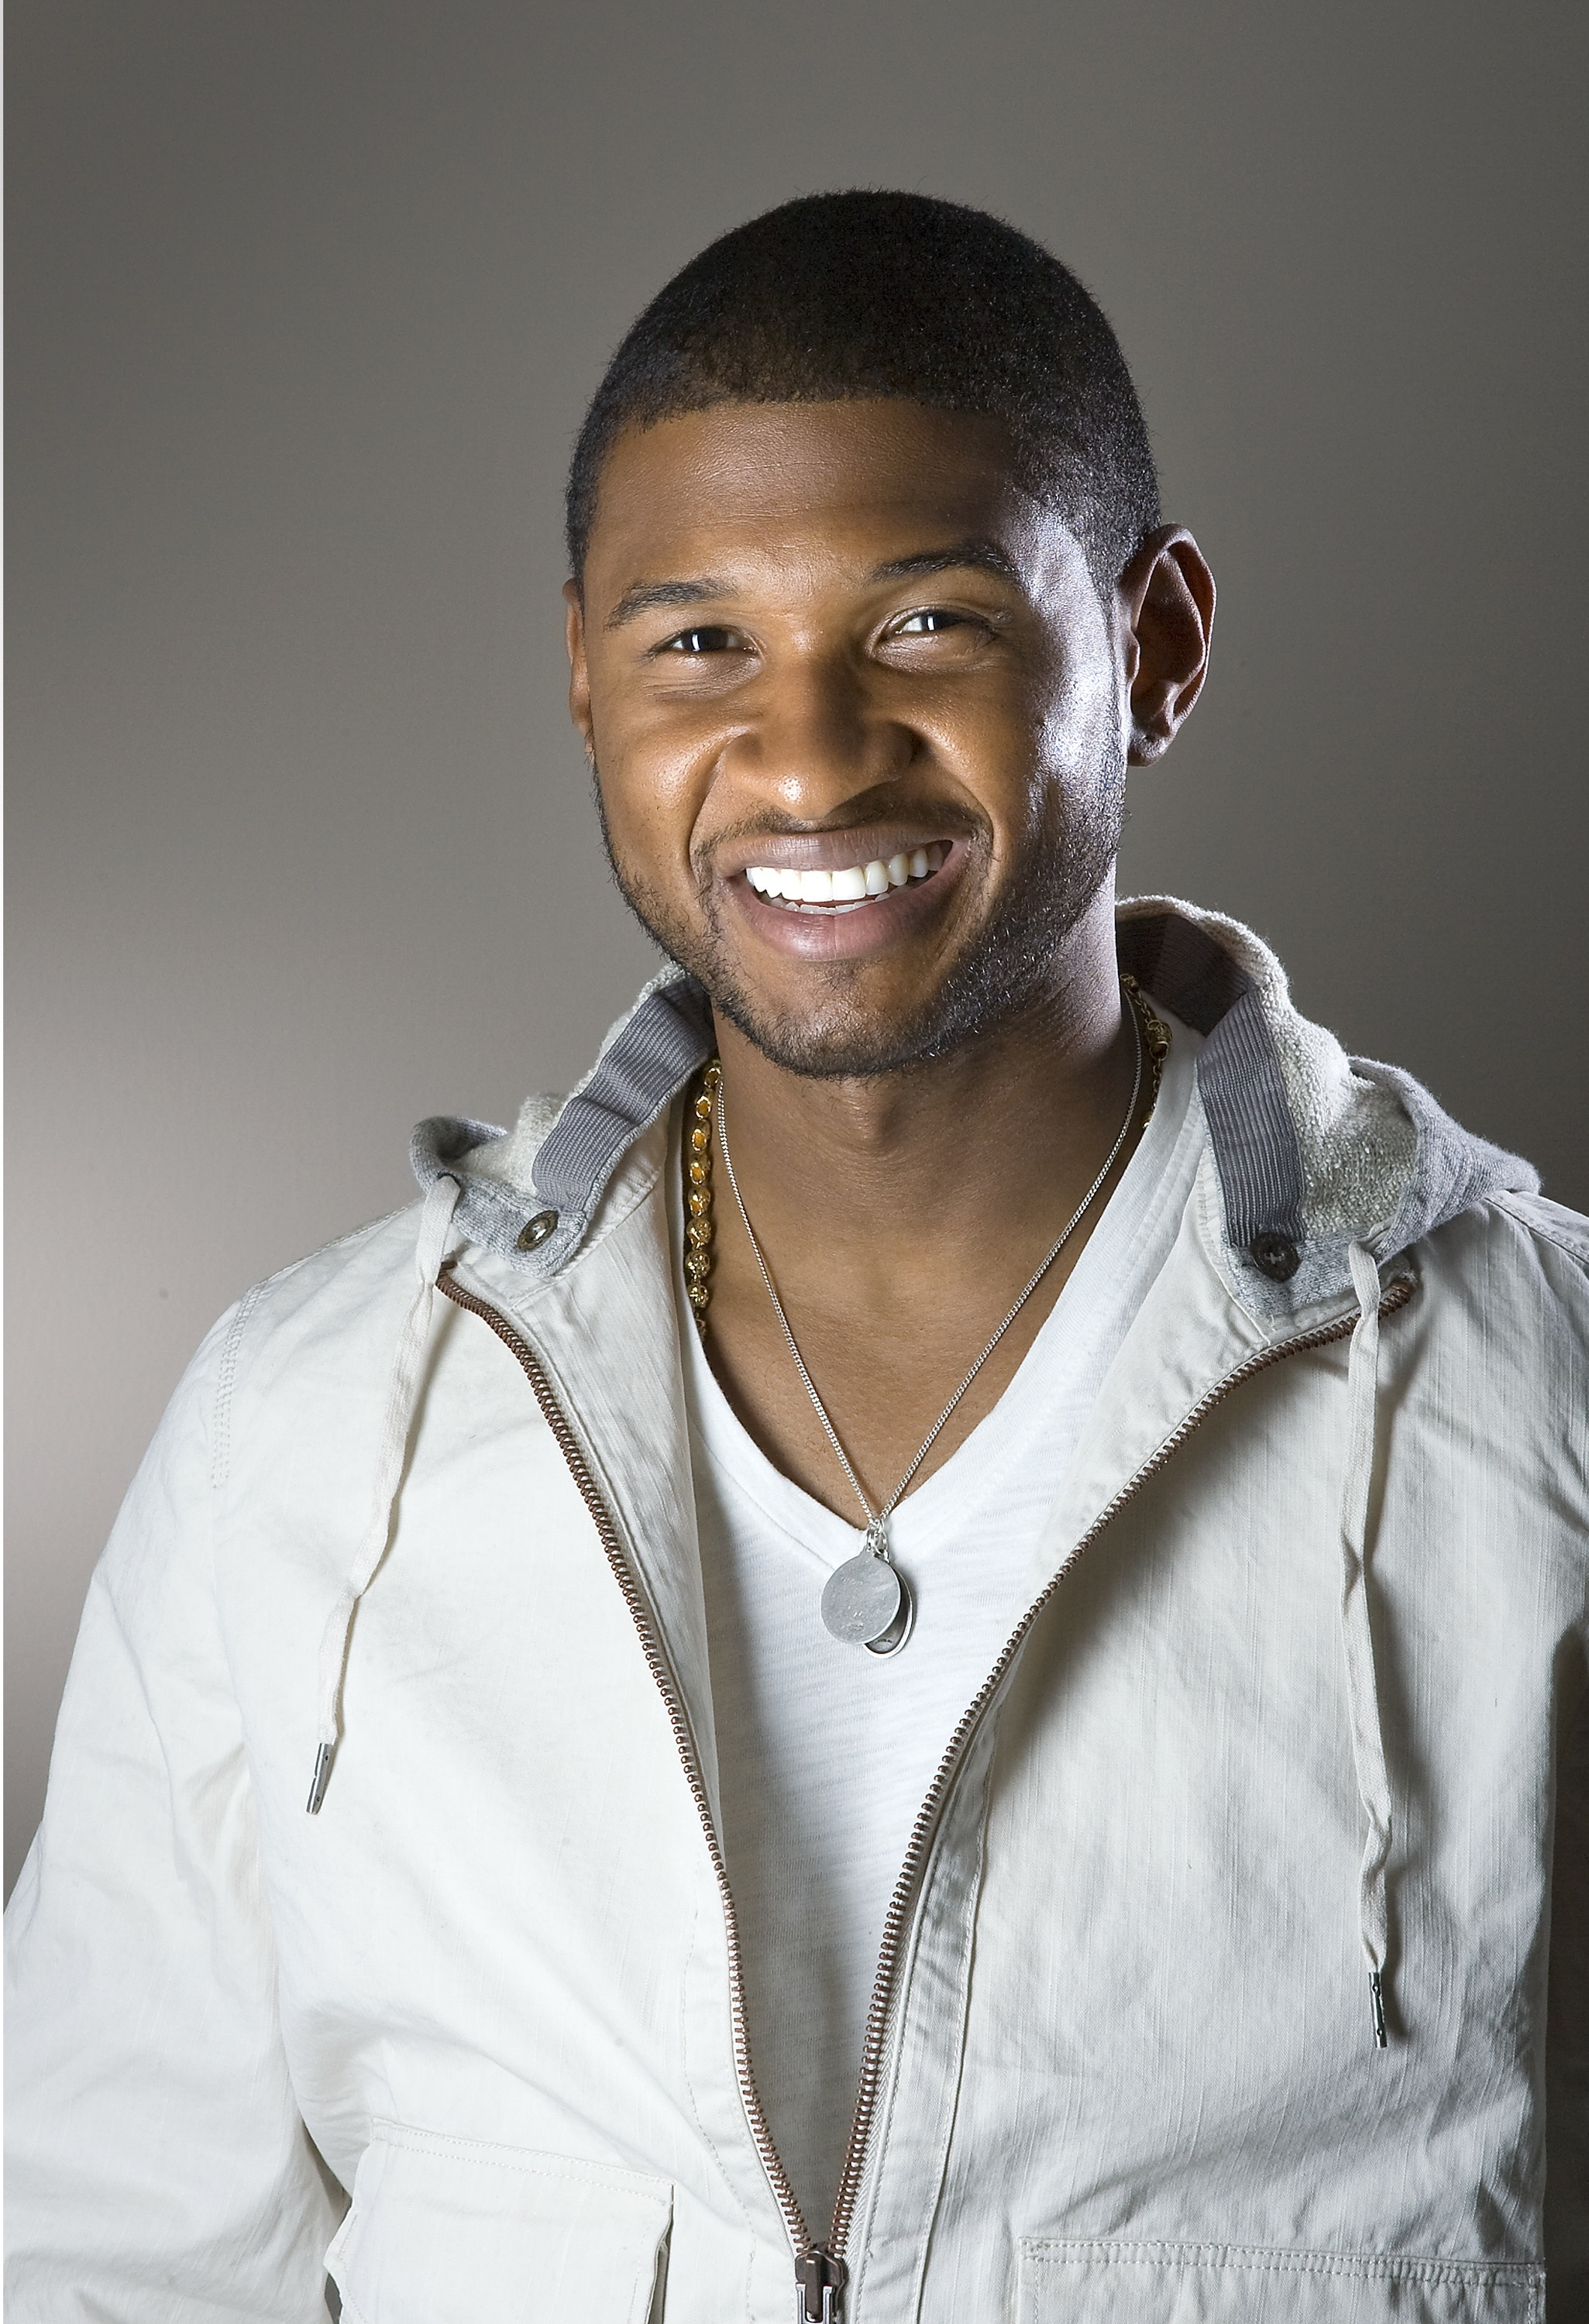 Usher's highs and lows | Gallery | Wonderwall com